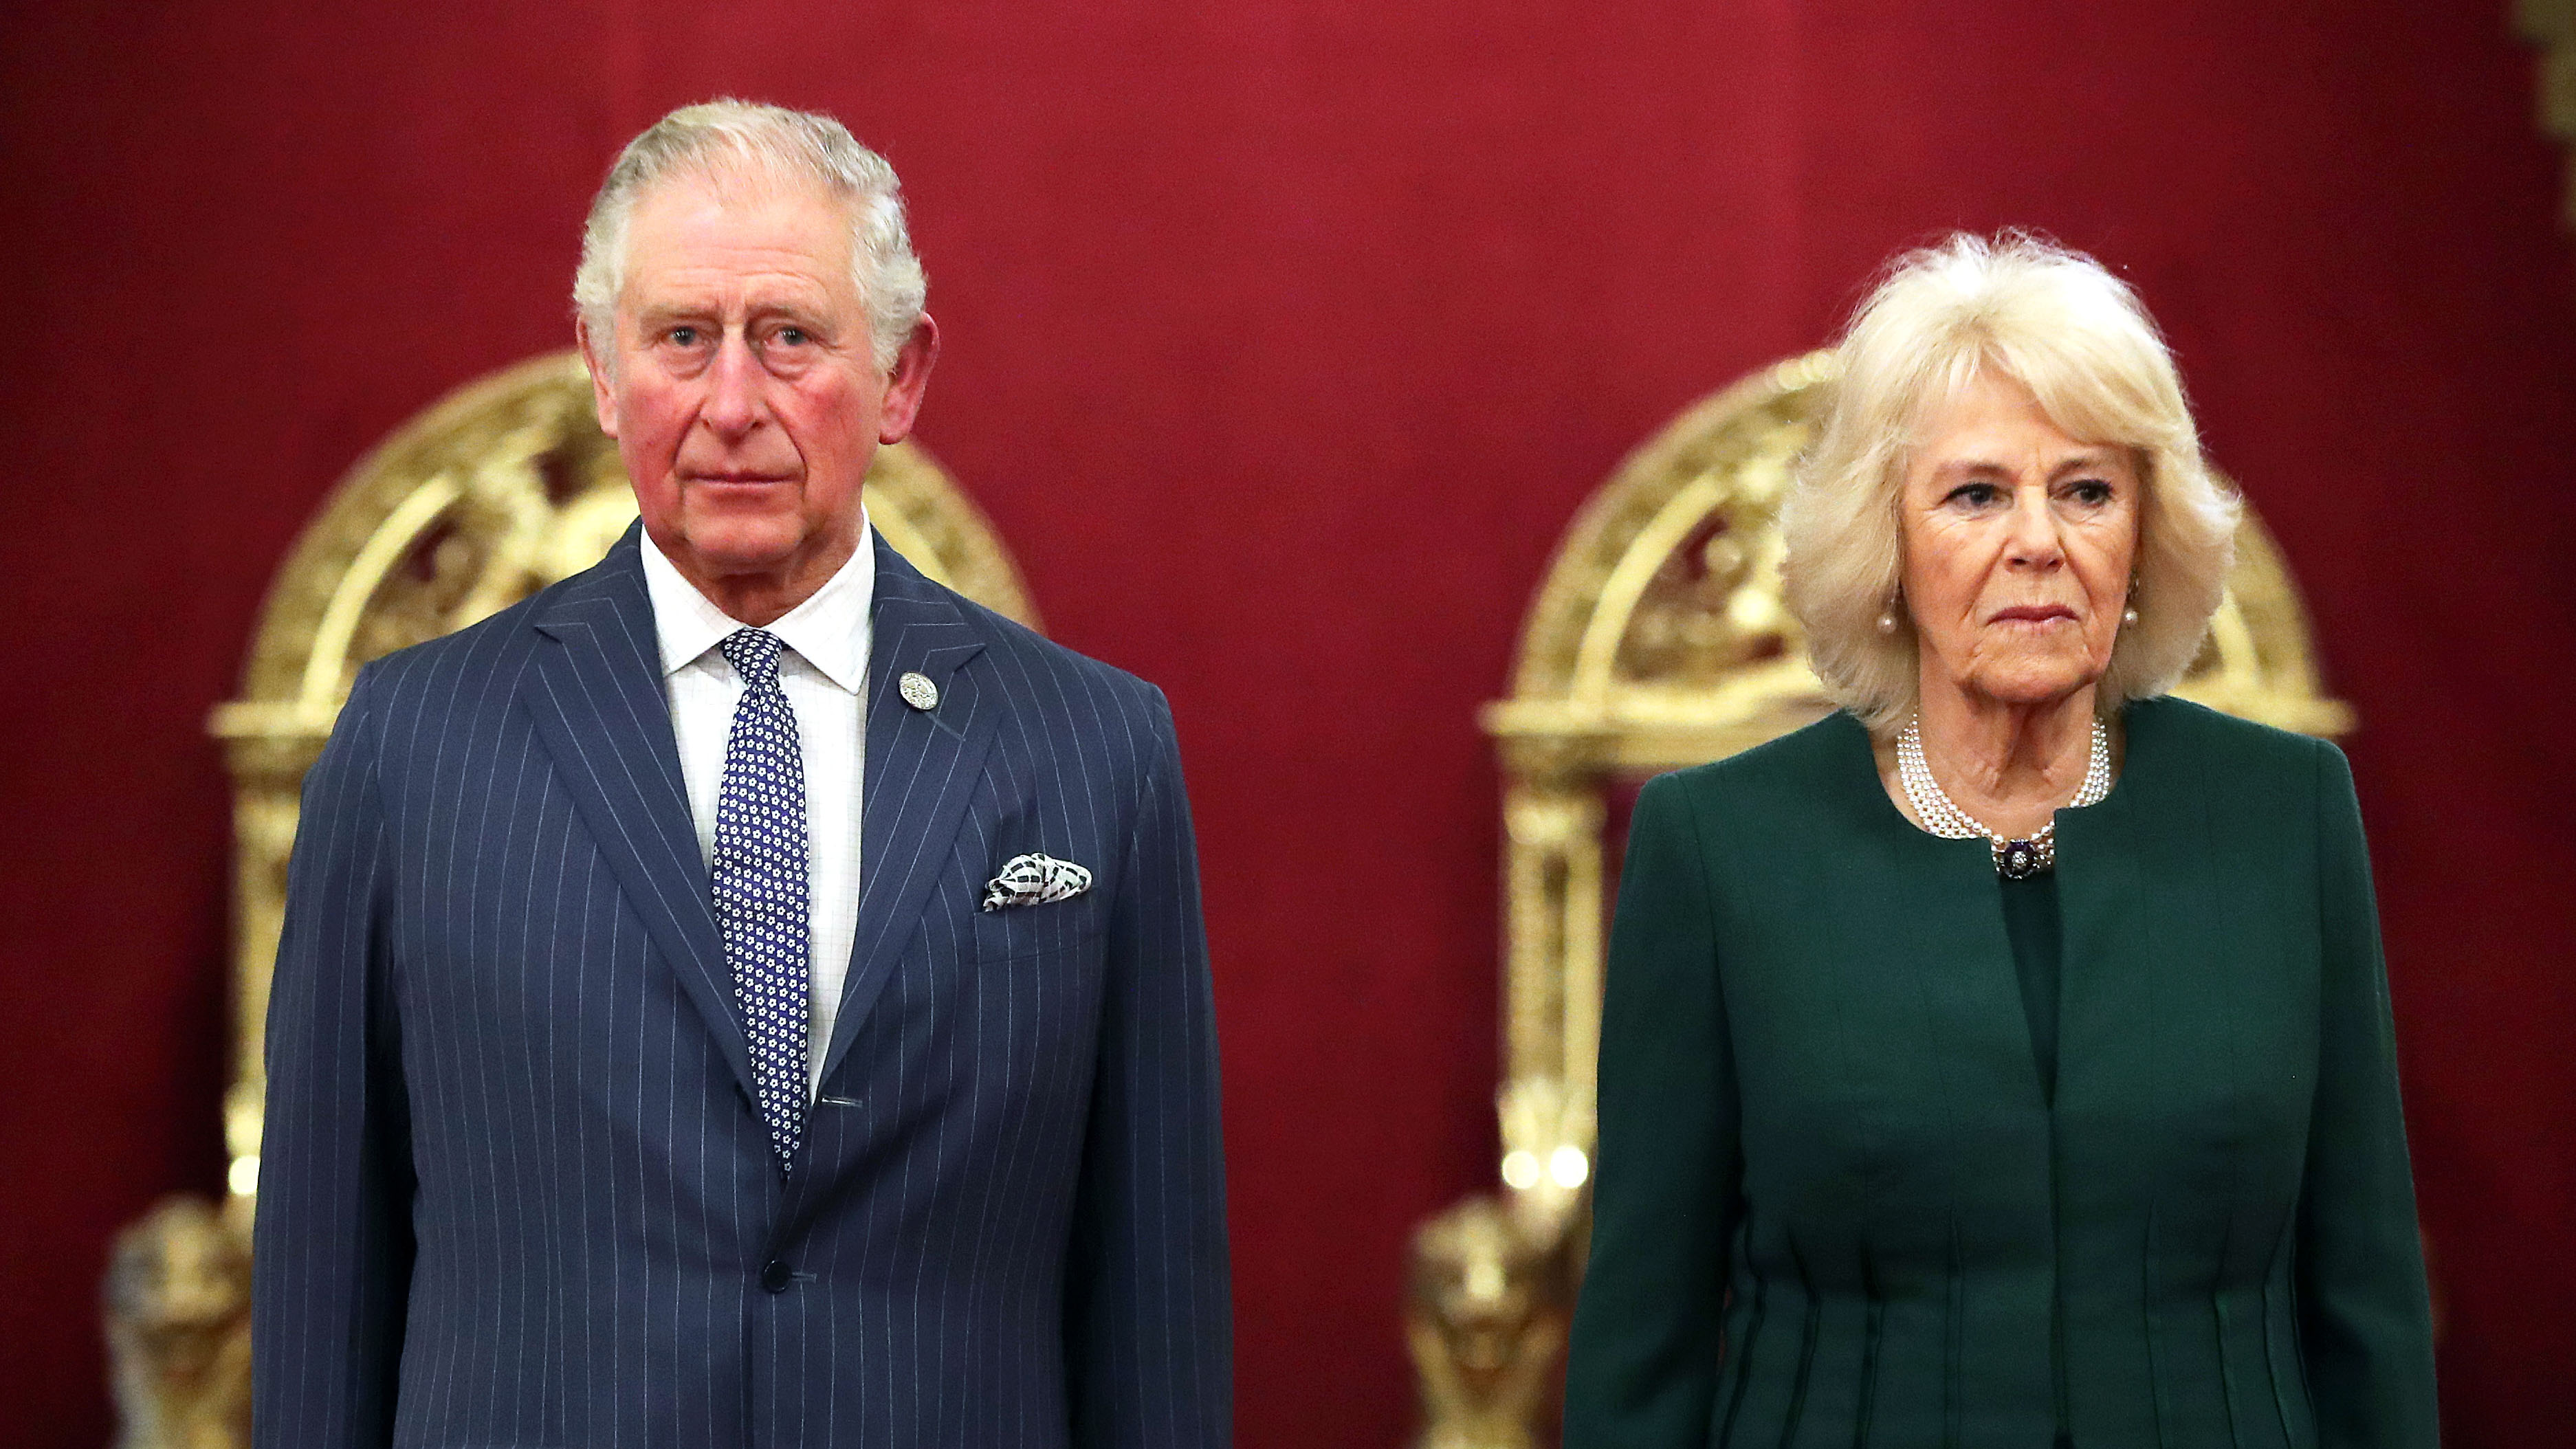 Prince Charles and Camilla, Duchess of Cornwall, attend an event on February 20 at Buckingham Palace in London.